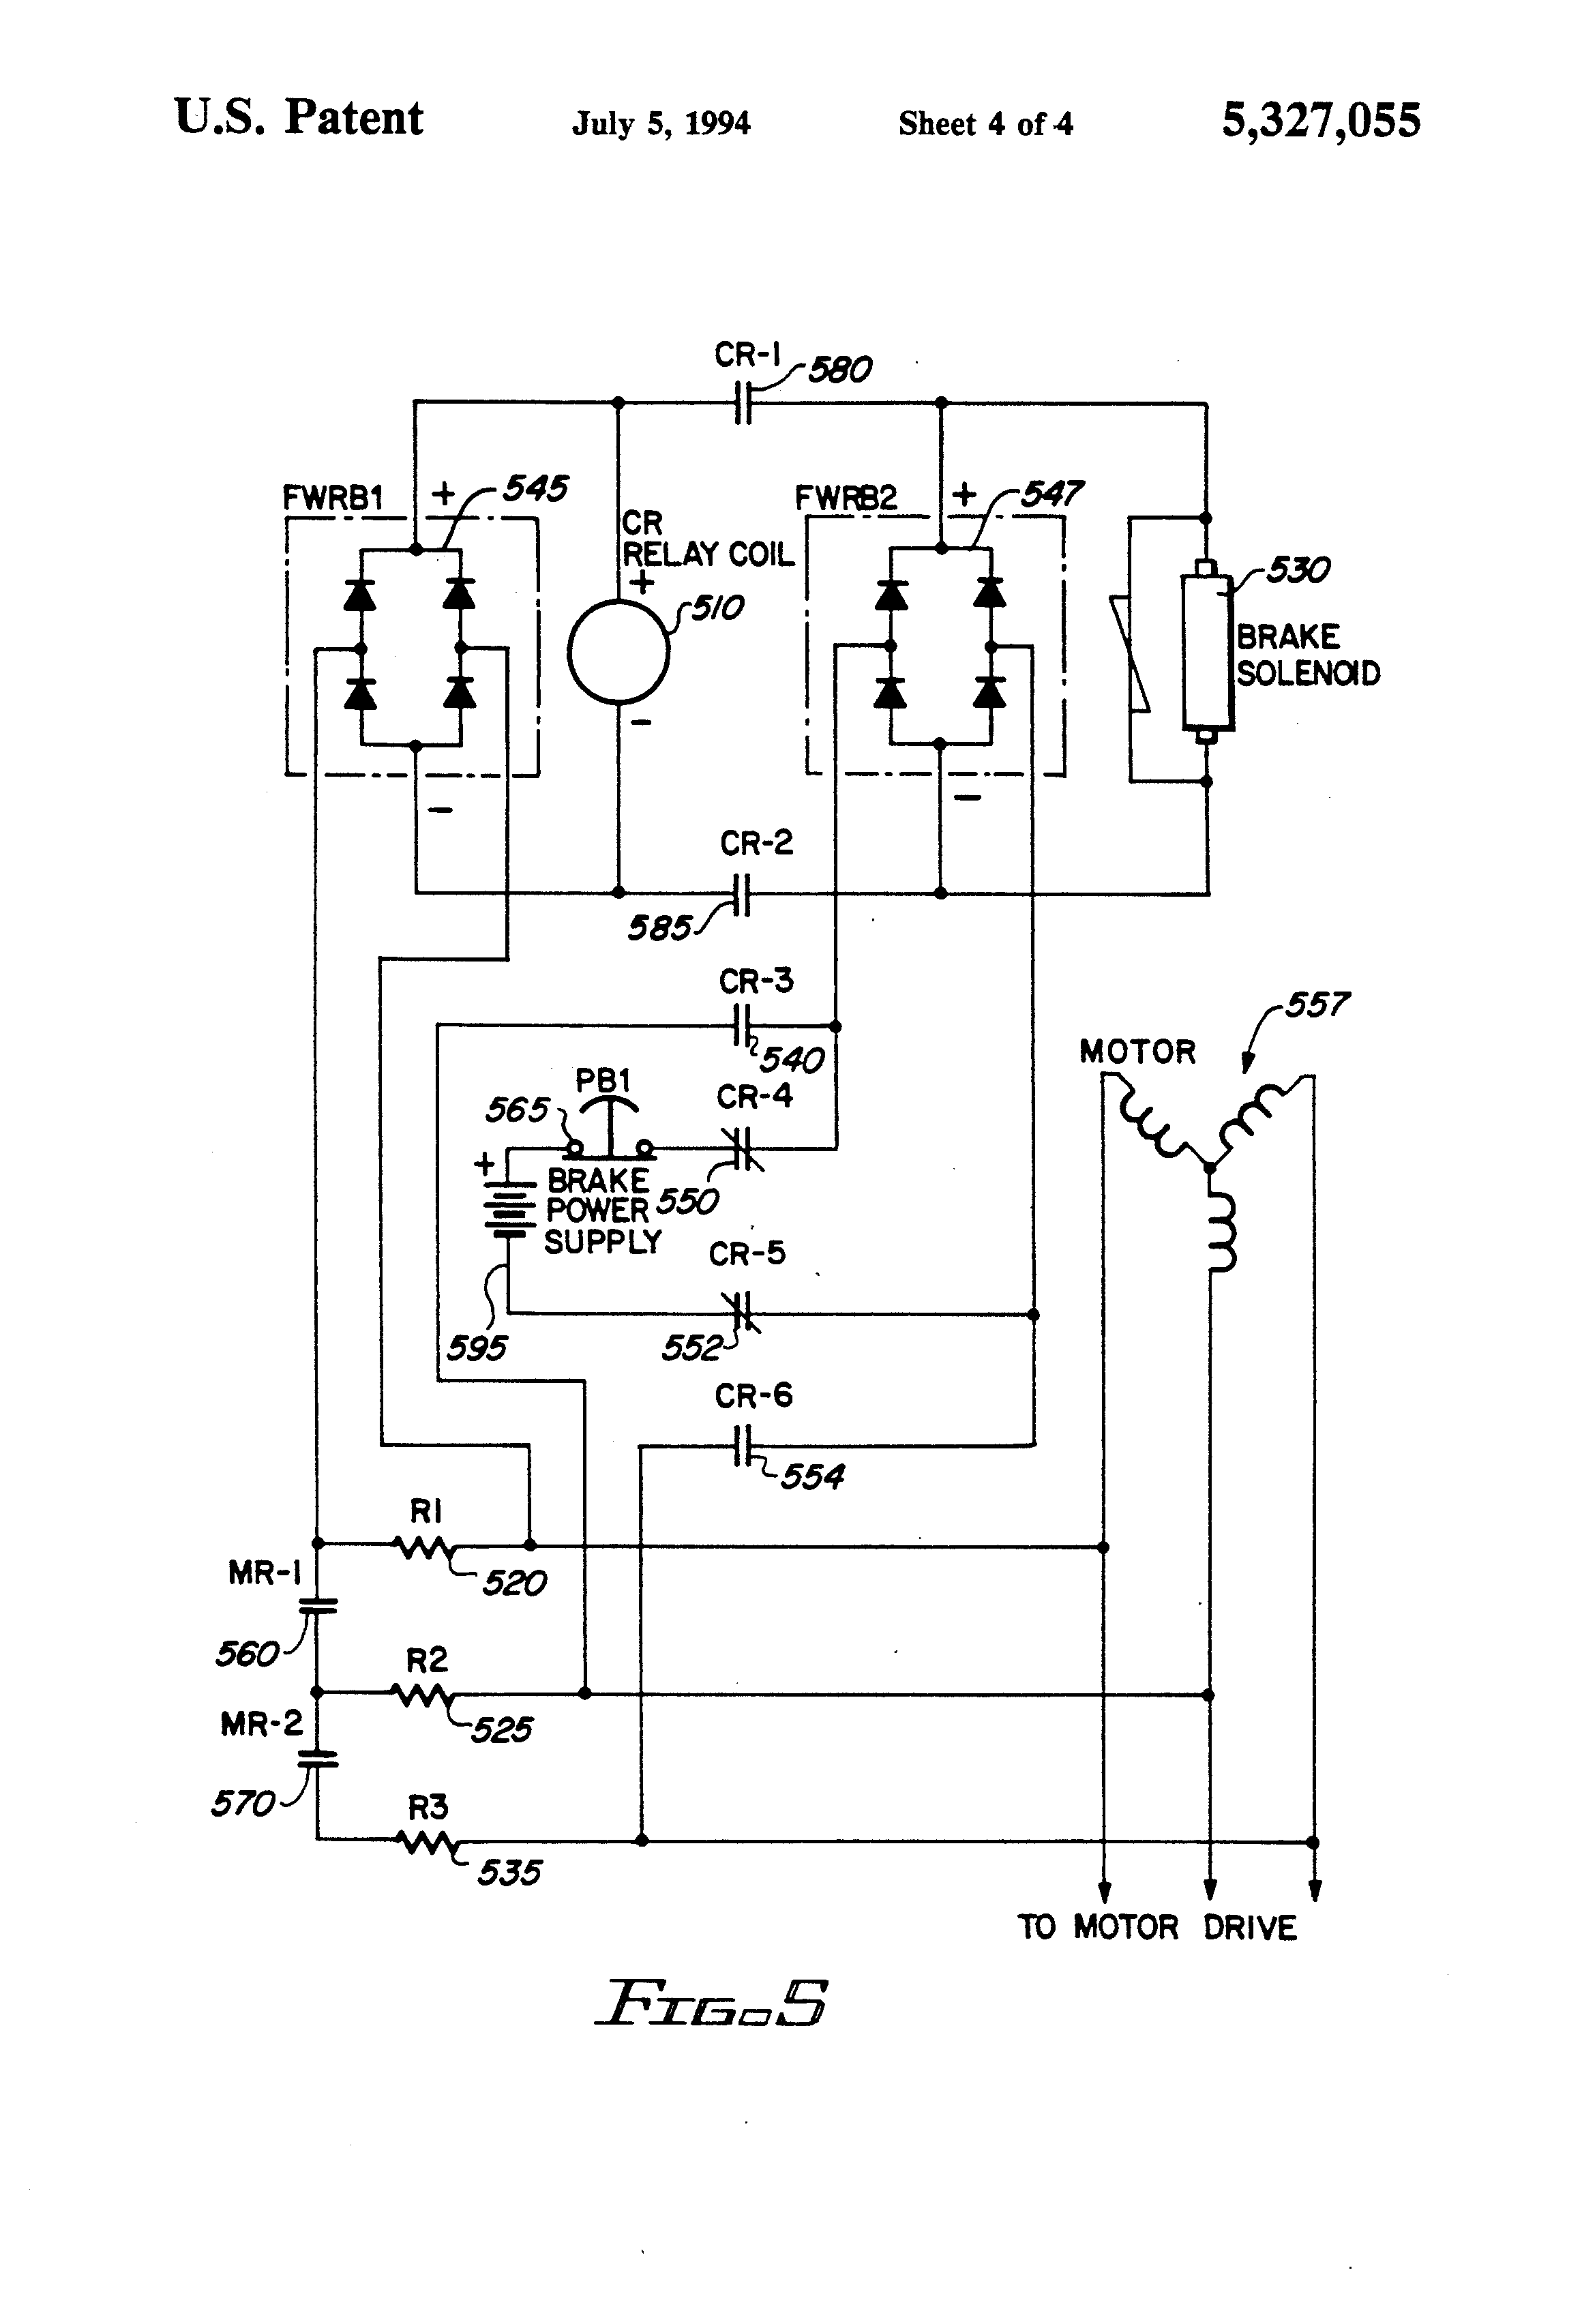 Sew motor brake wiring diagram impremedia